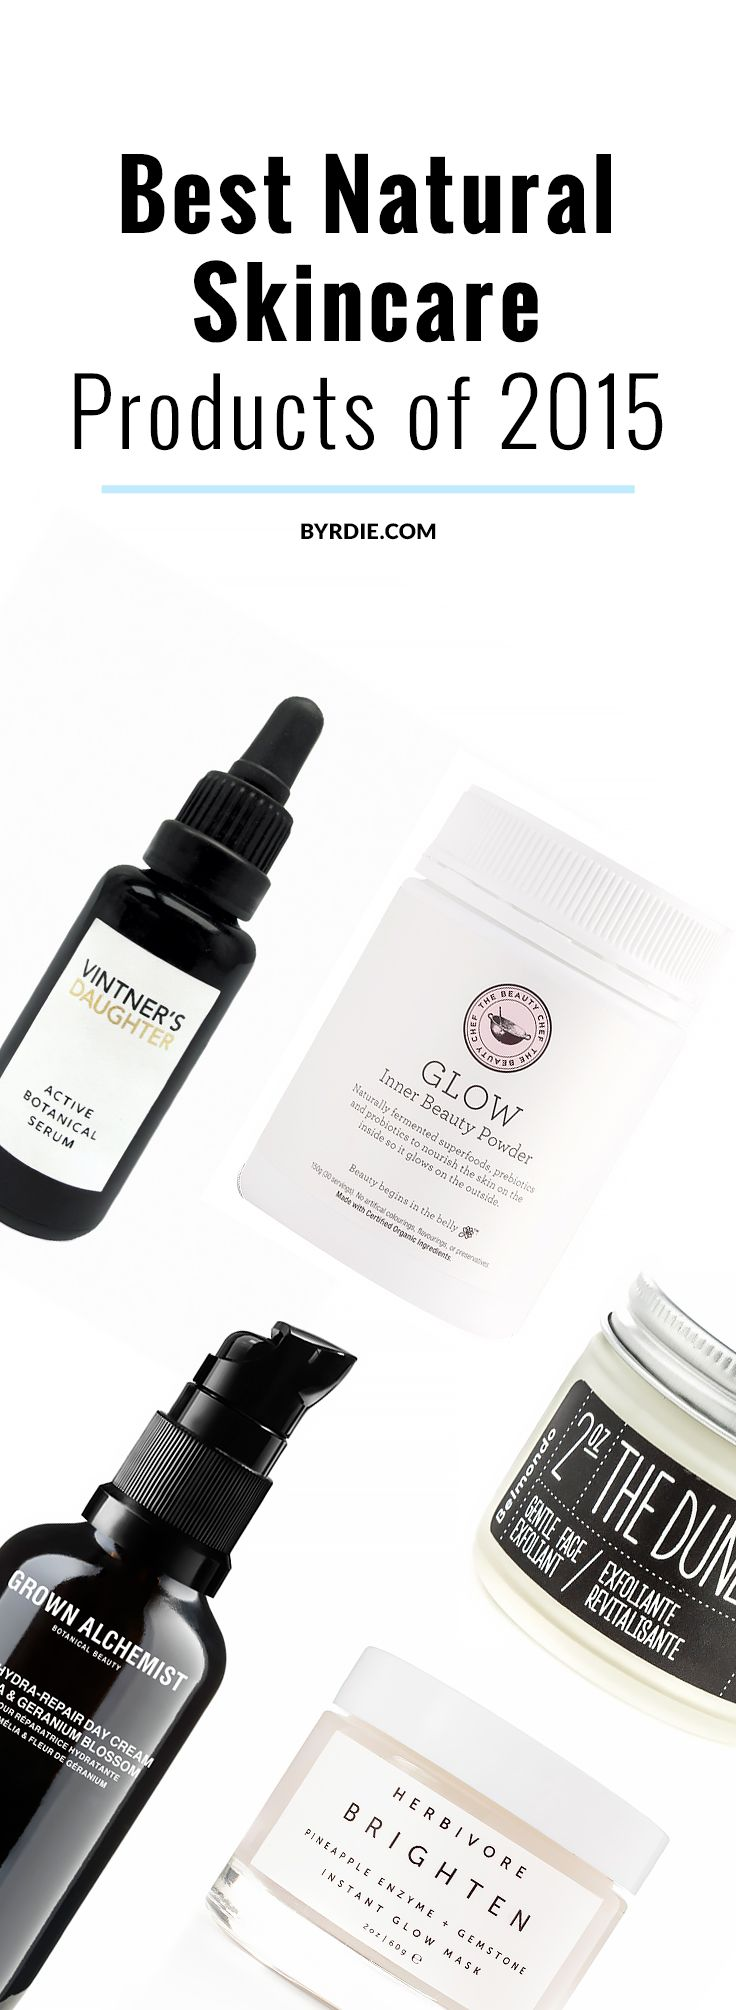 The best natural skincare products of 2015